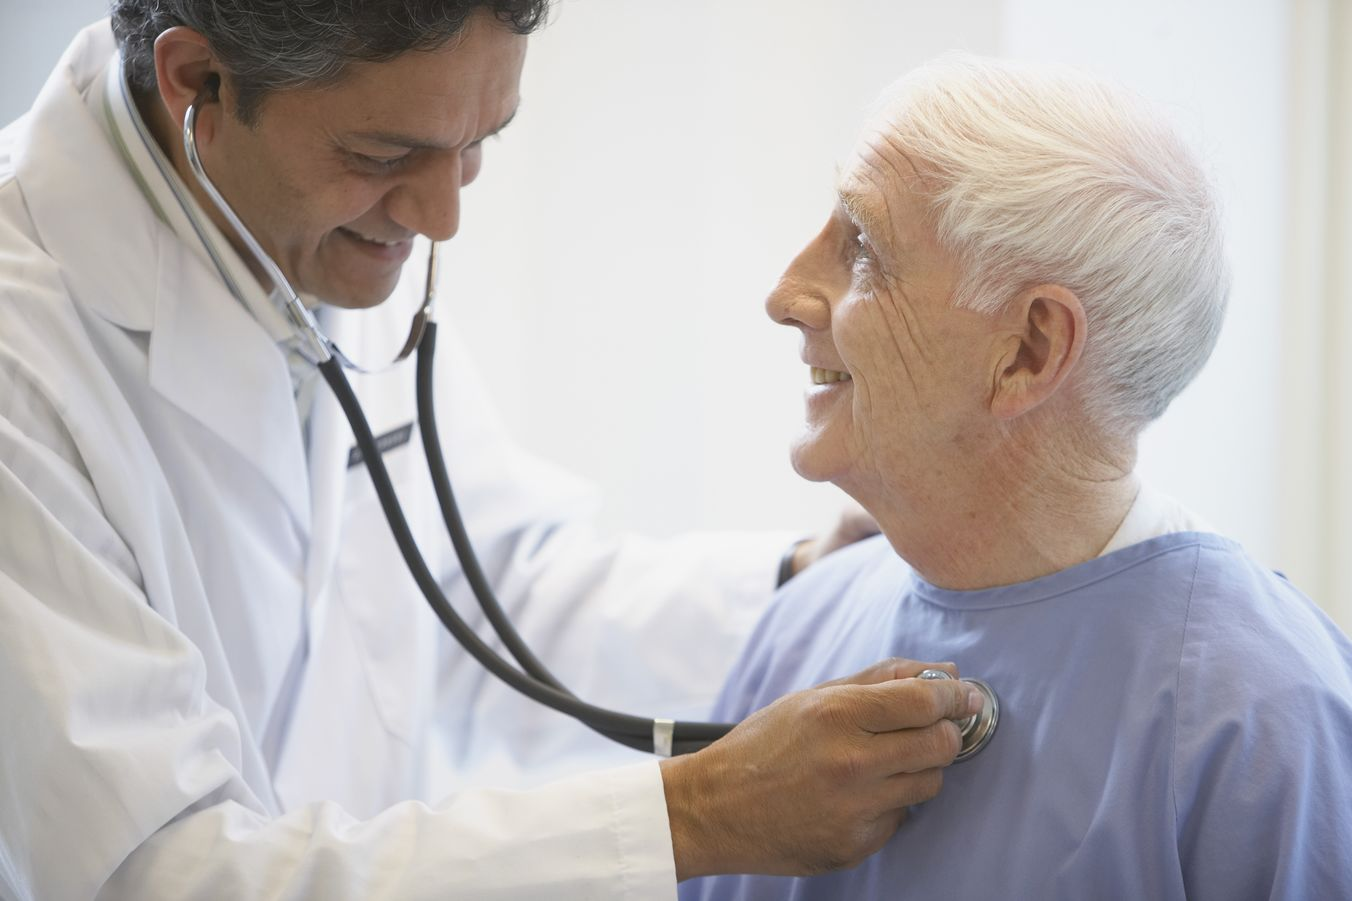 Male doctor with stethoscope is checking heart of smiling older man in blue patient gown.